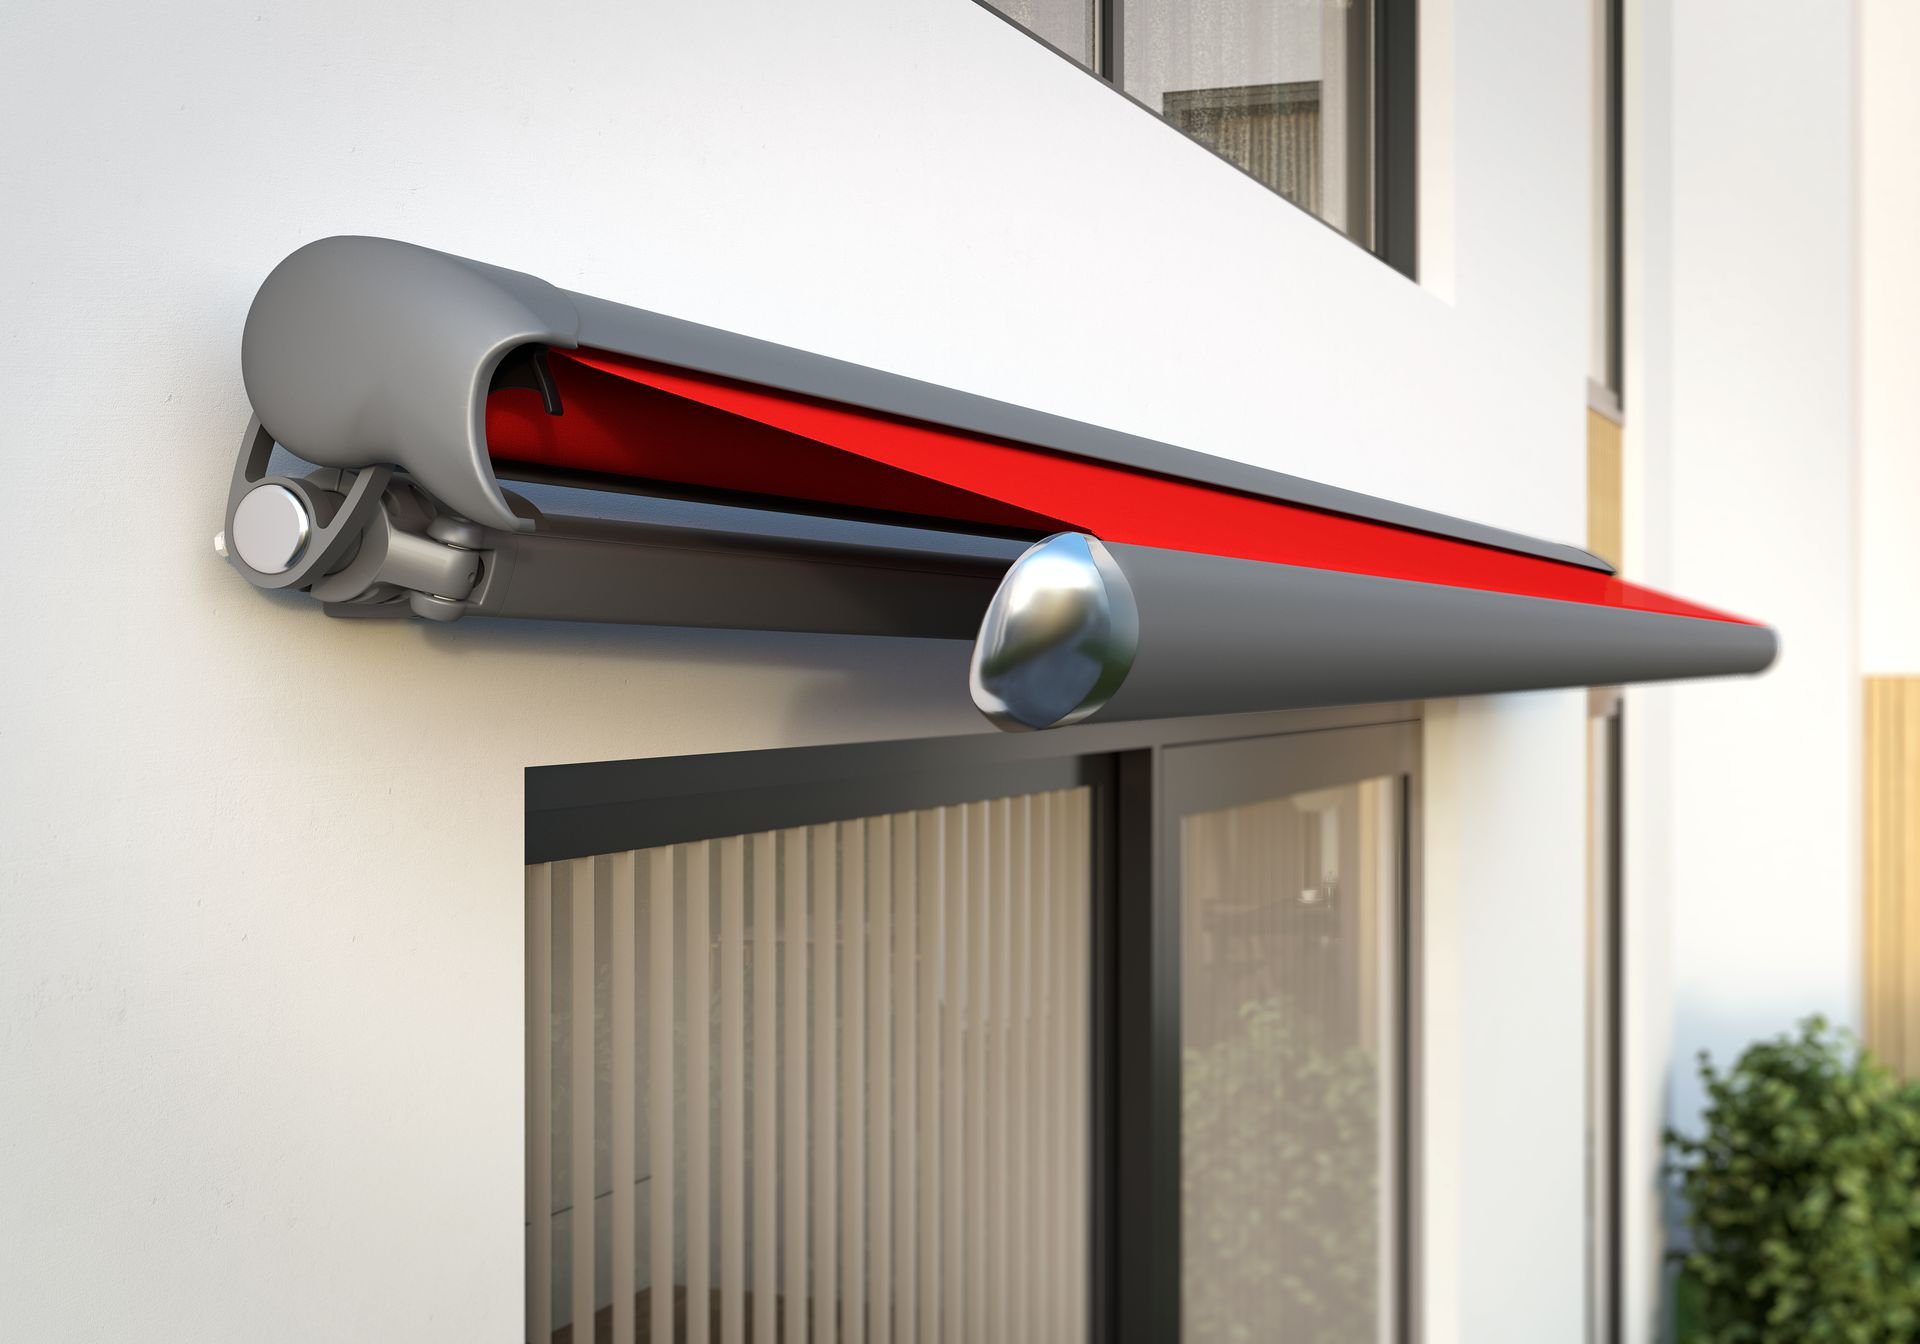 1650 Markilux Awning - red - cassette- Supplied and Fitted by Awningsouth - Hampshire, Surrey, London